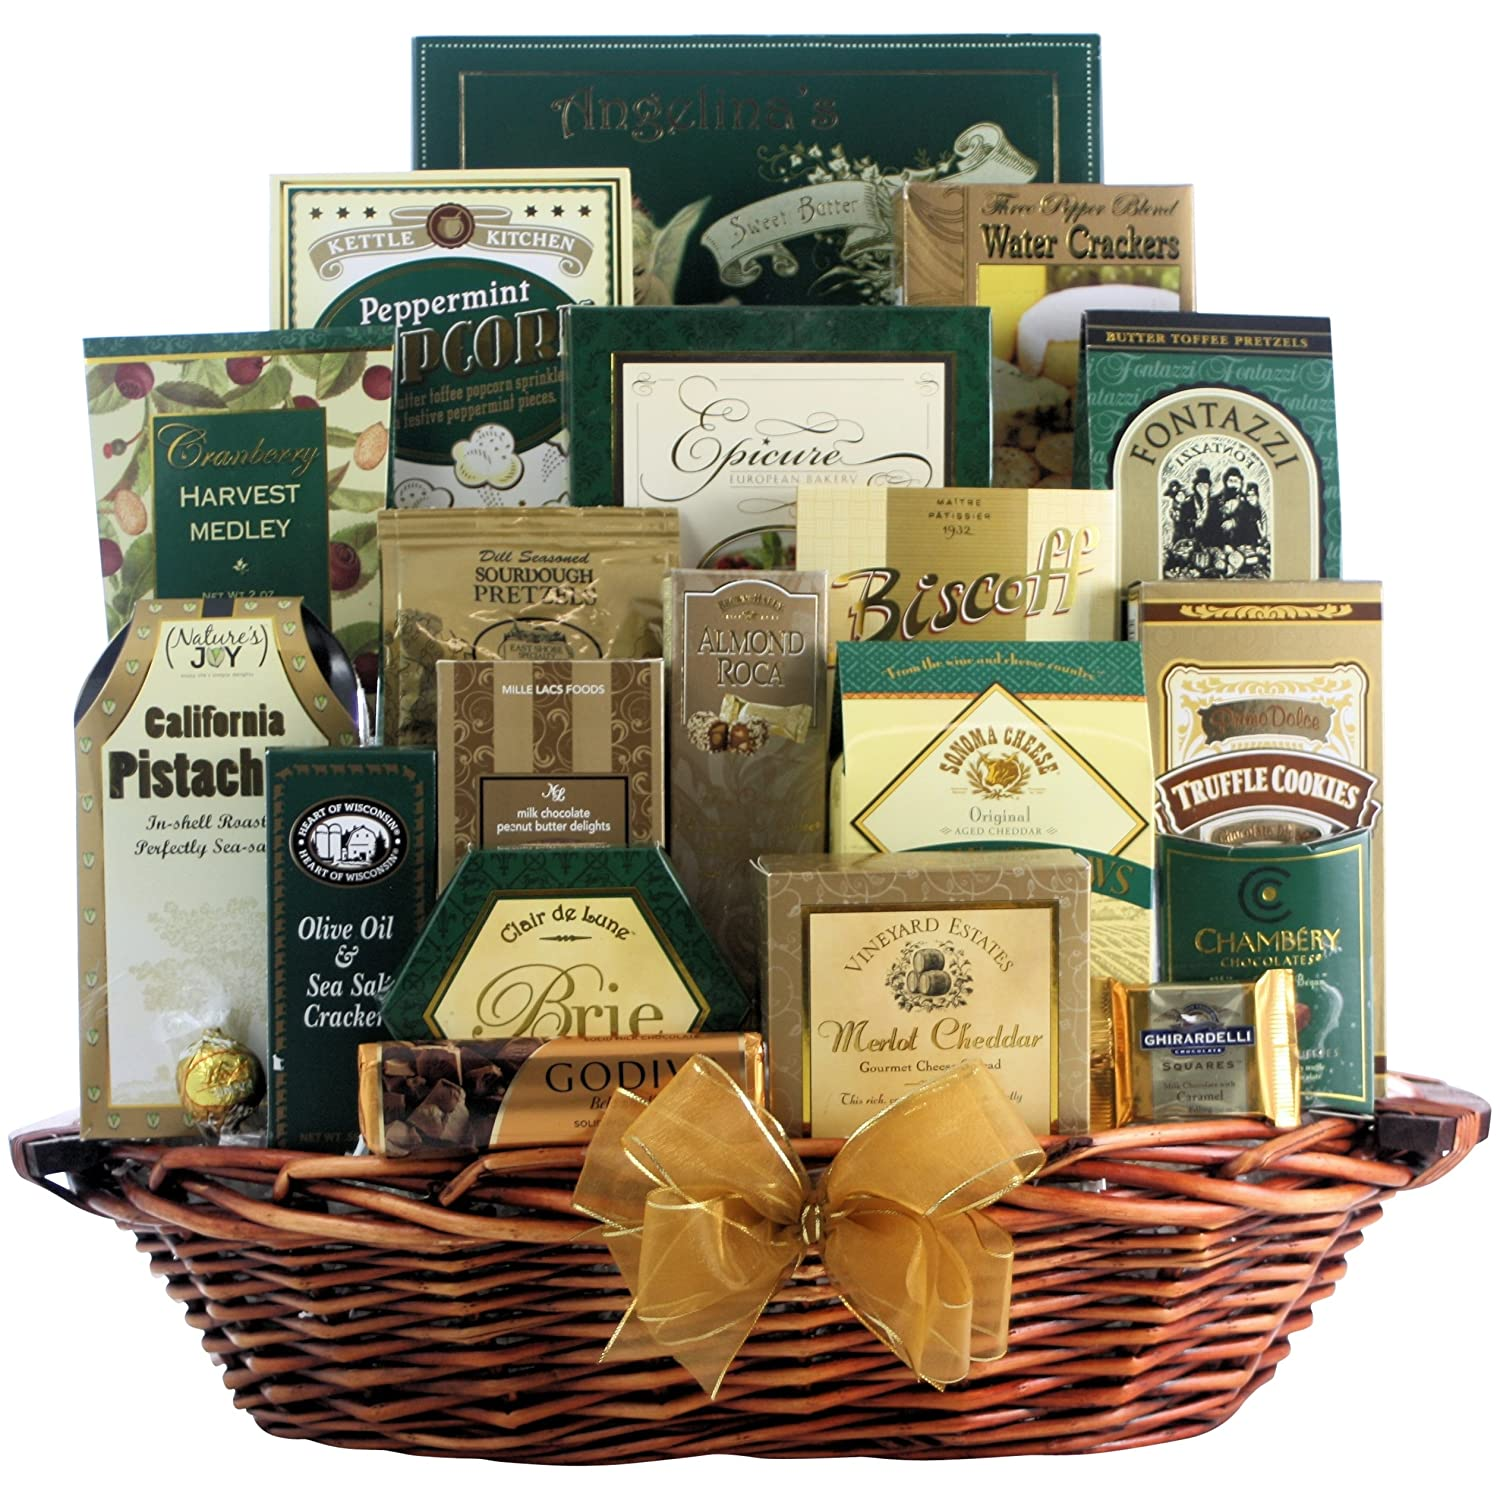 Amazon great arrivals champagne gift basket elegant amazon great arrivals champagne gift basket elegant expressions gourmet snacks and hors doeuvres gifts grocery gourmet food negle Image collections